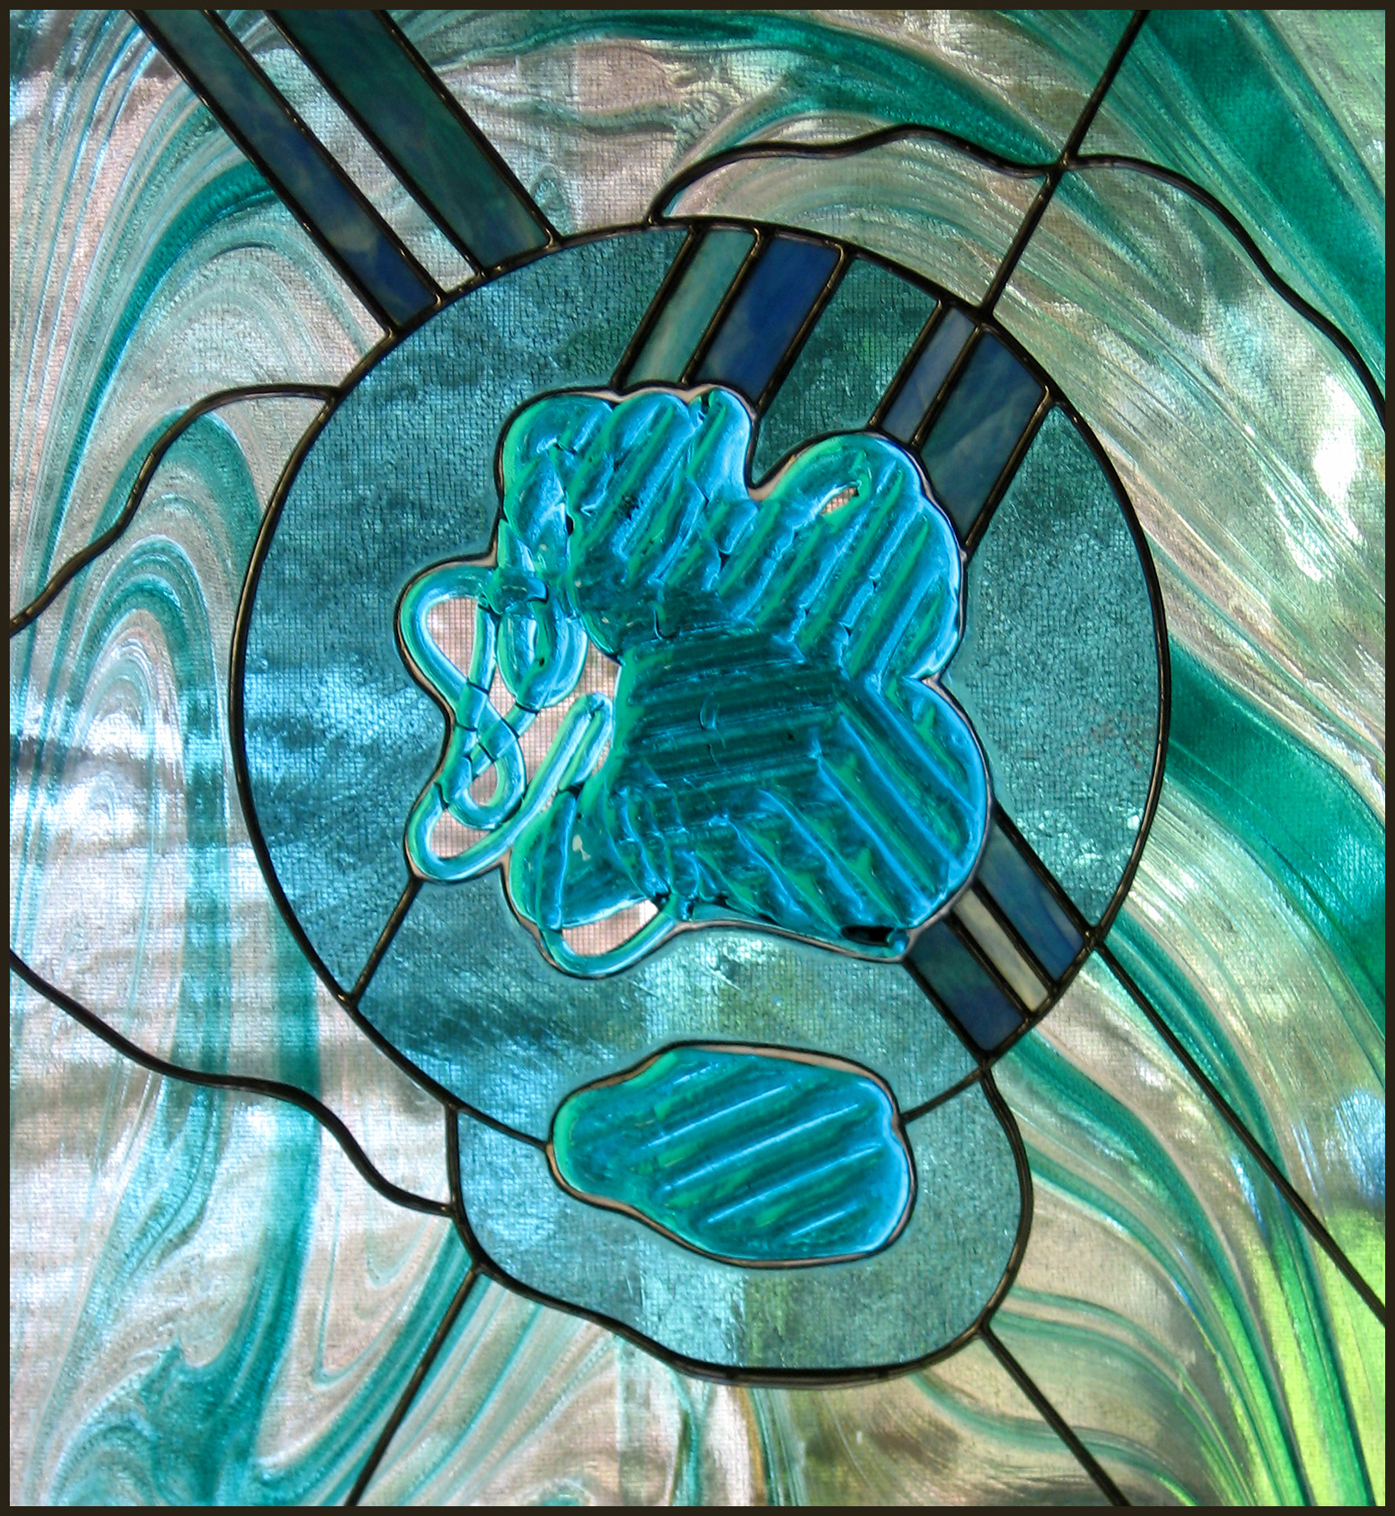 stained glass abstract tiles - photo #23